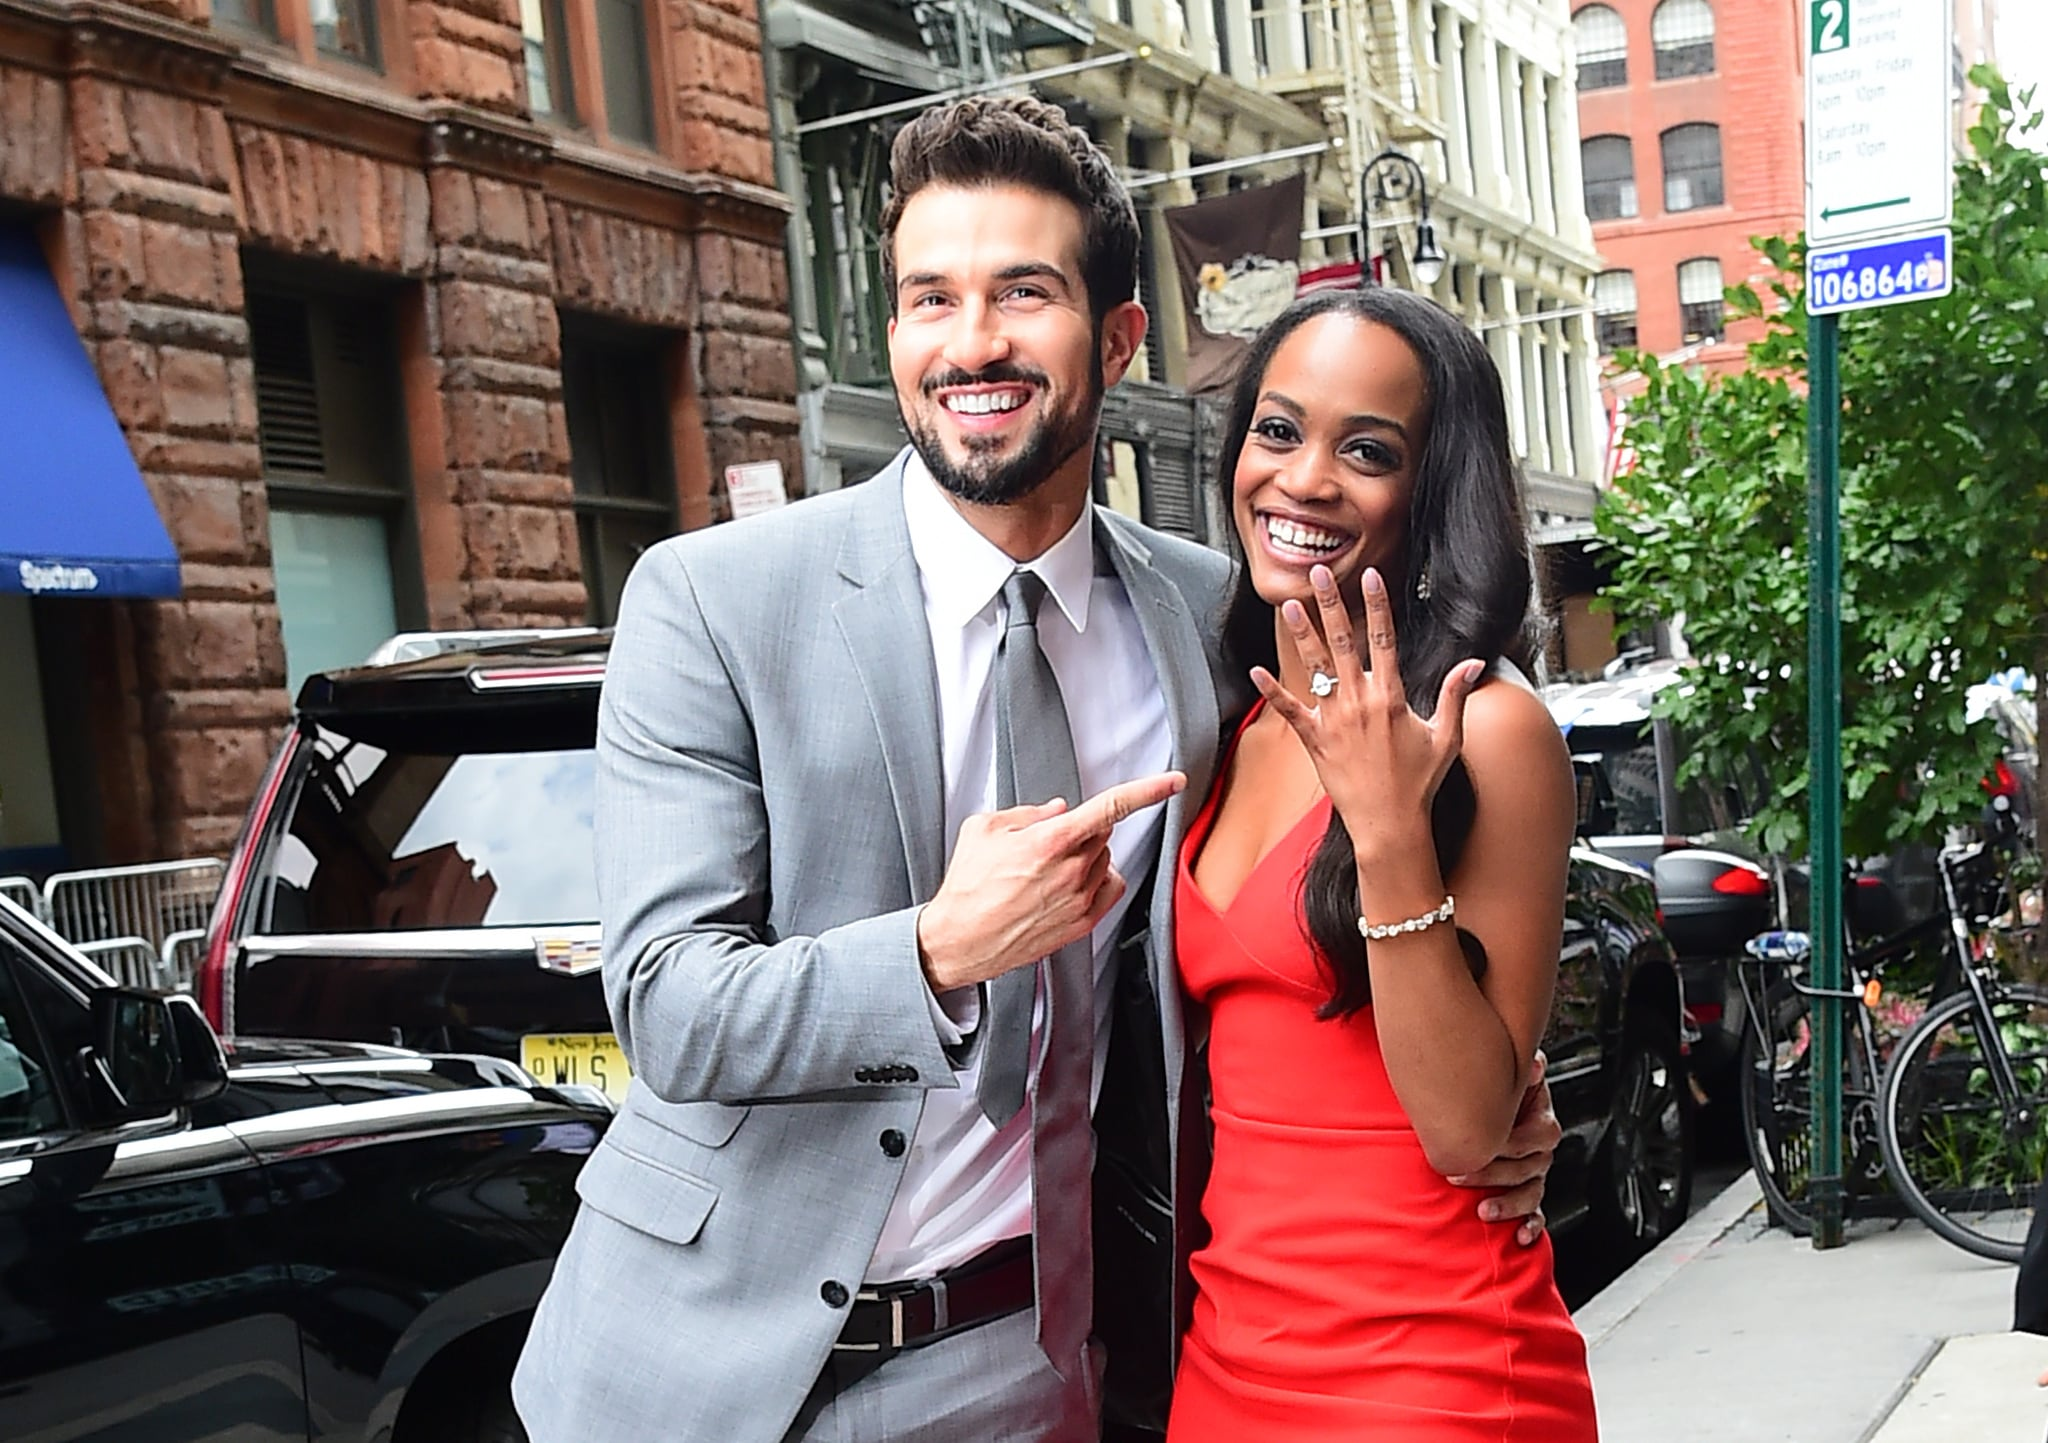 NEW YORK, NY - AUGUST 08:  Bachelorette's Rachel Lindsay and her fiance, Bryan Abasolo arrive at